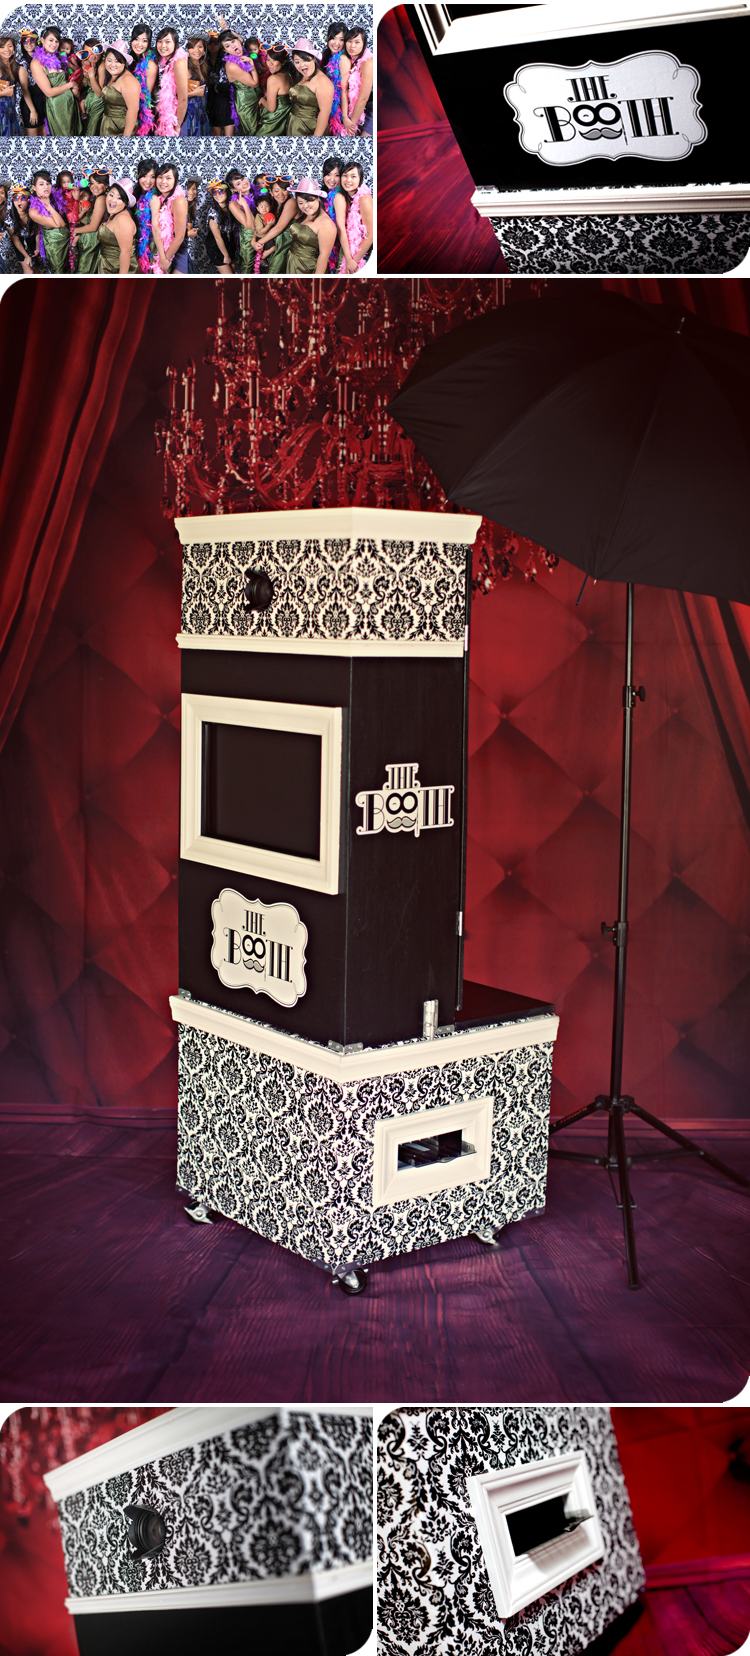 The Booth – Hawaii Photo Booth